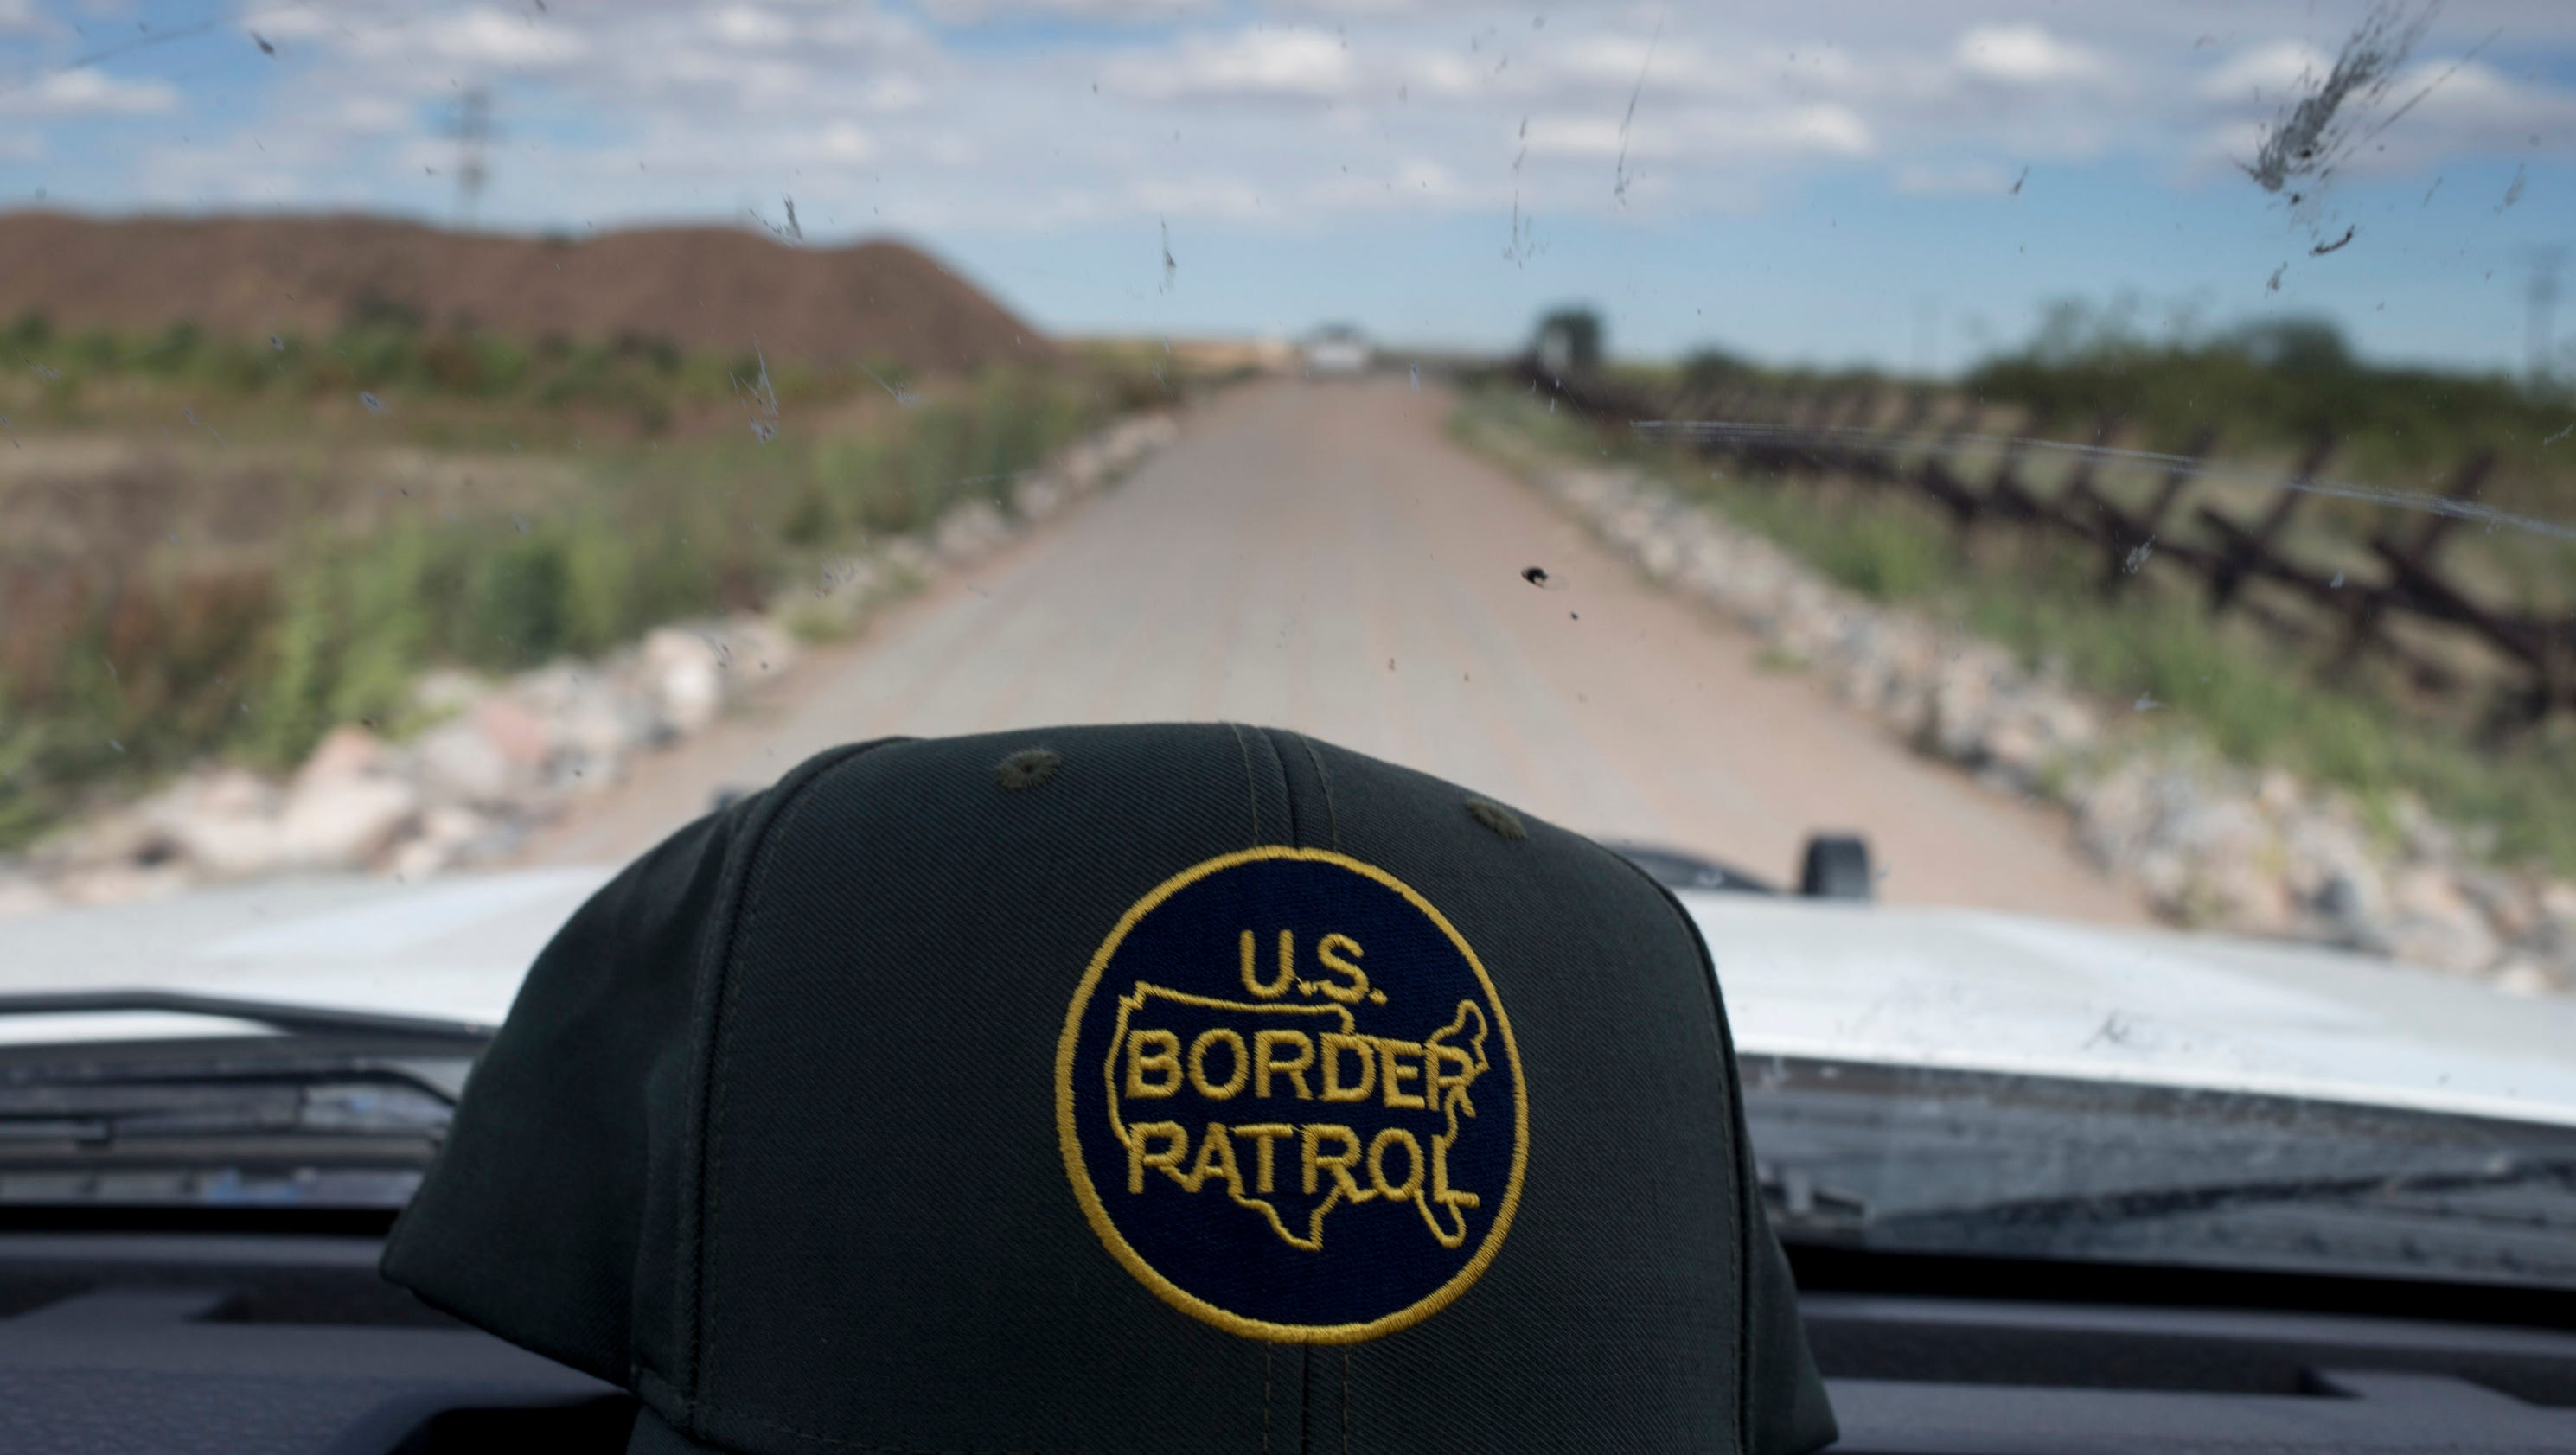 'Trump effect' fades, but 2017 illegal crossings at U.S.-Mexico border hit historic low